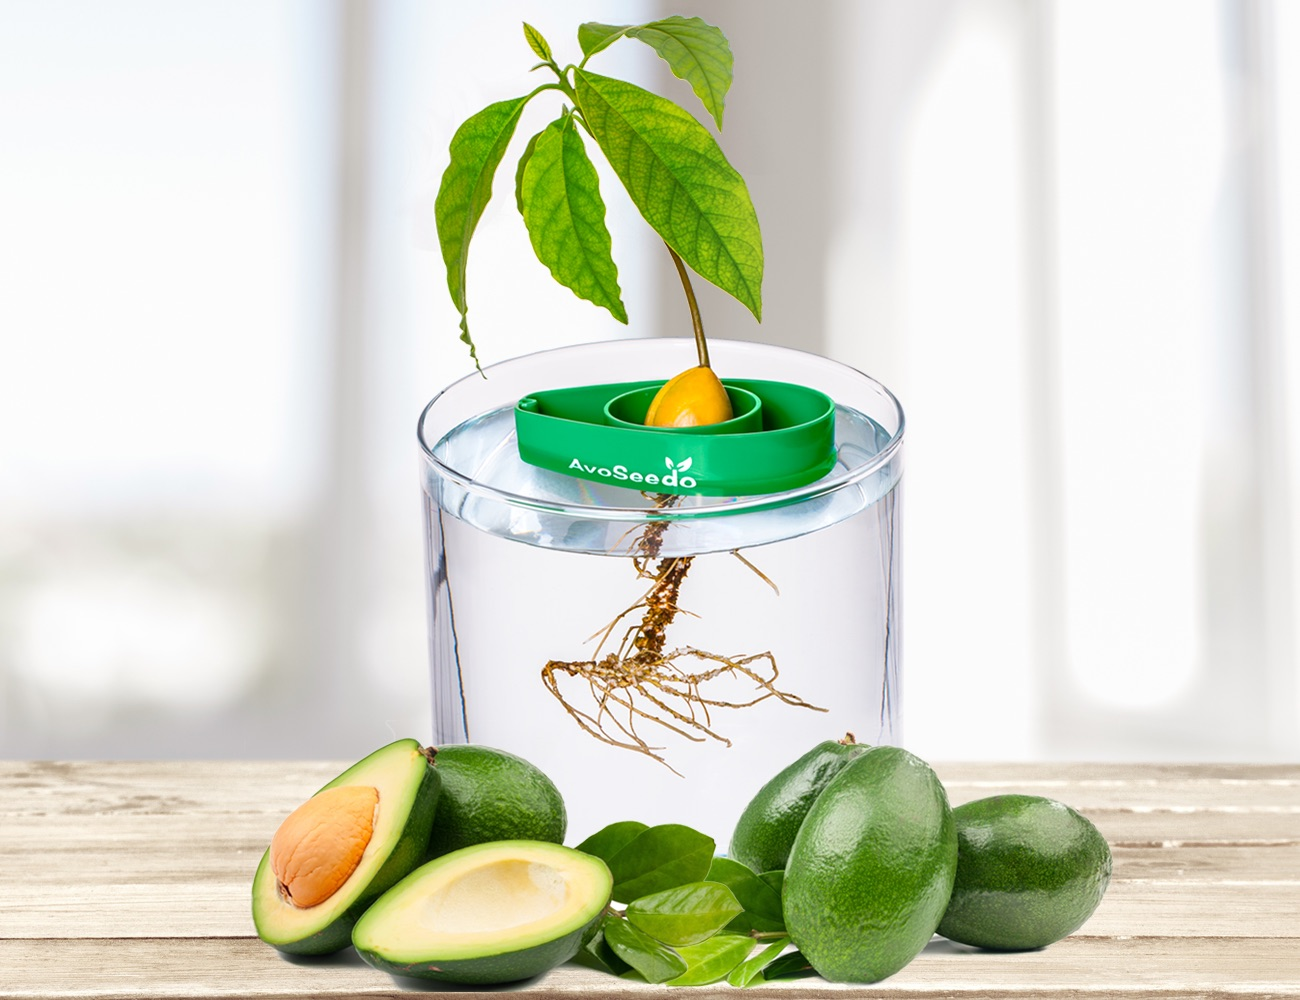 AvoSeedo – Grow your own Avocado Tree!